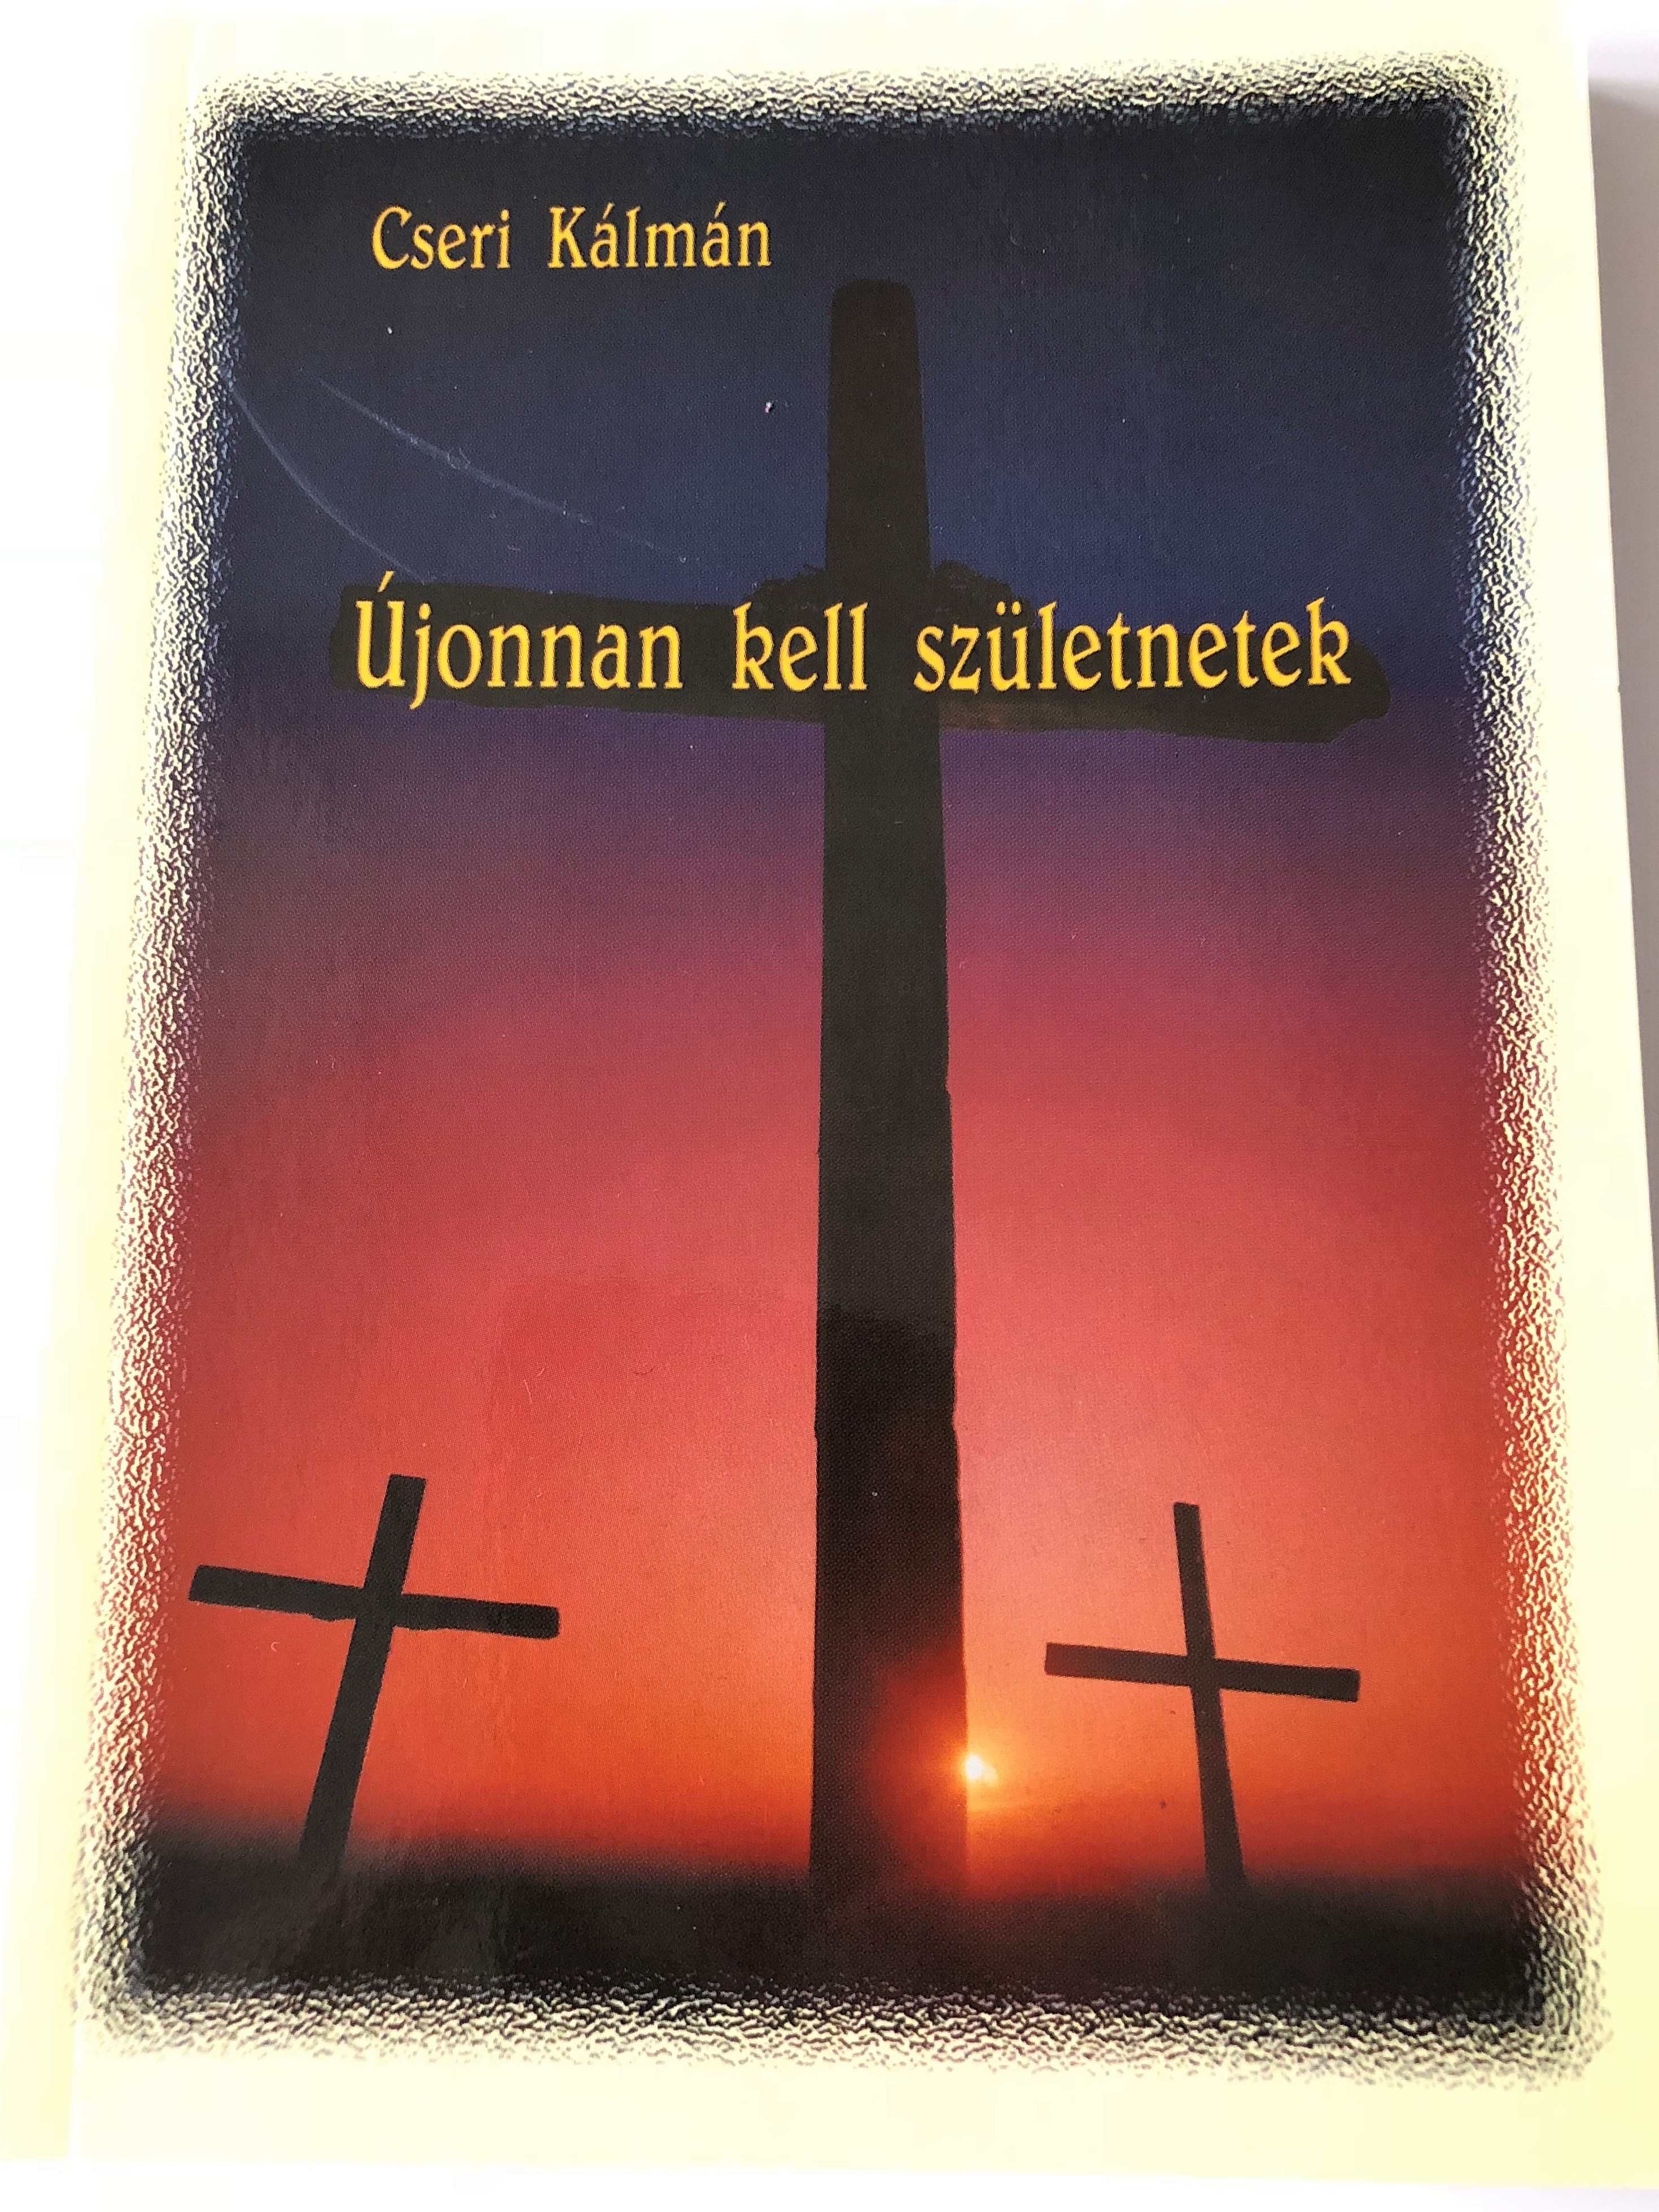 -jonnan-kell-sz-letnetek-you-have-to-be-born-again-sermons-from-1993-in-hungarian-by-cseri-k-lm-n-paperback-2001-1-.jpg